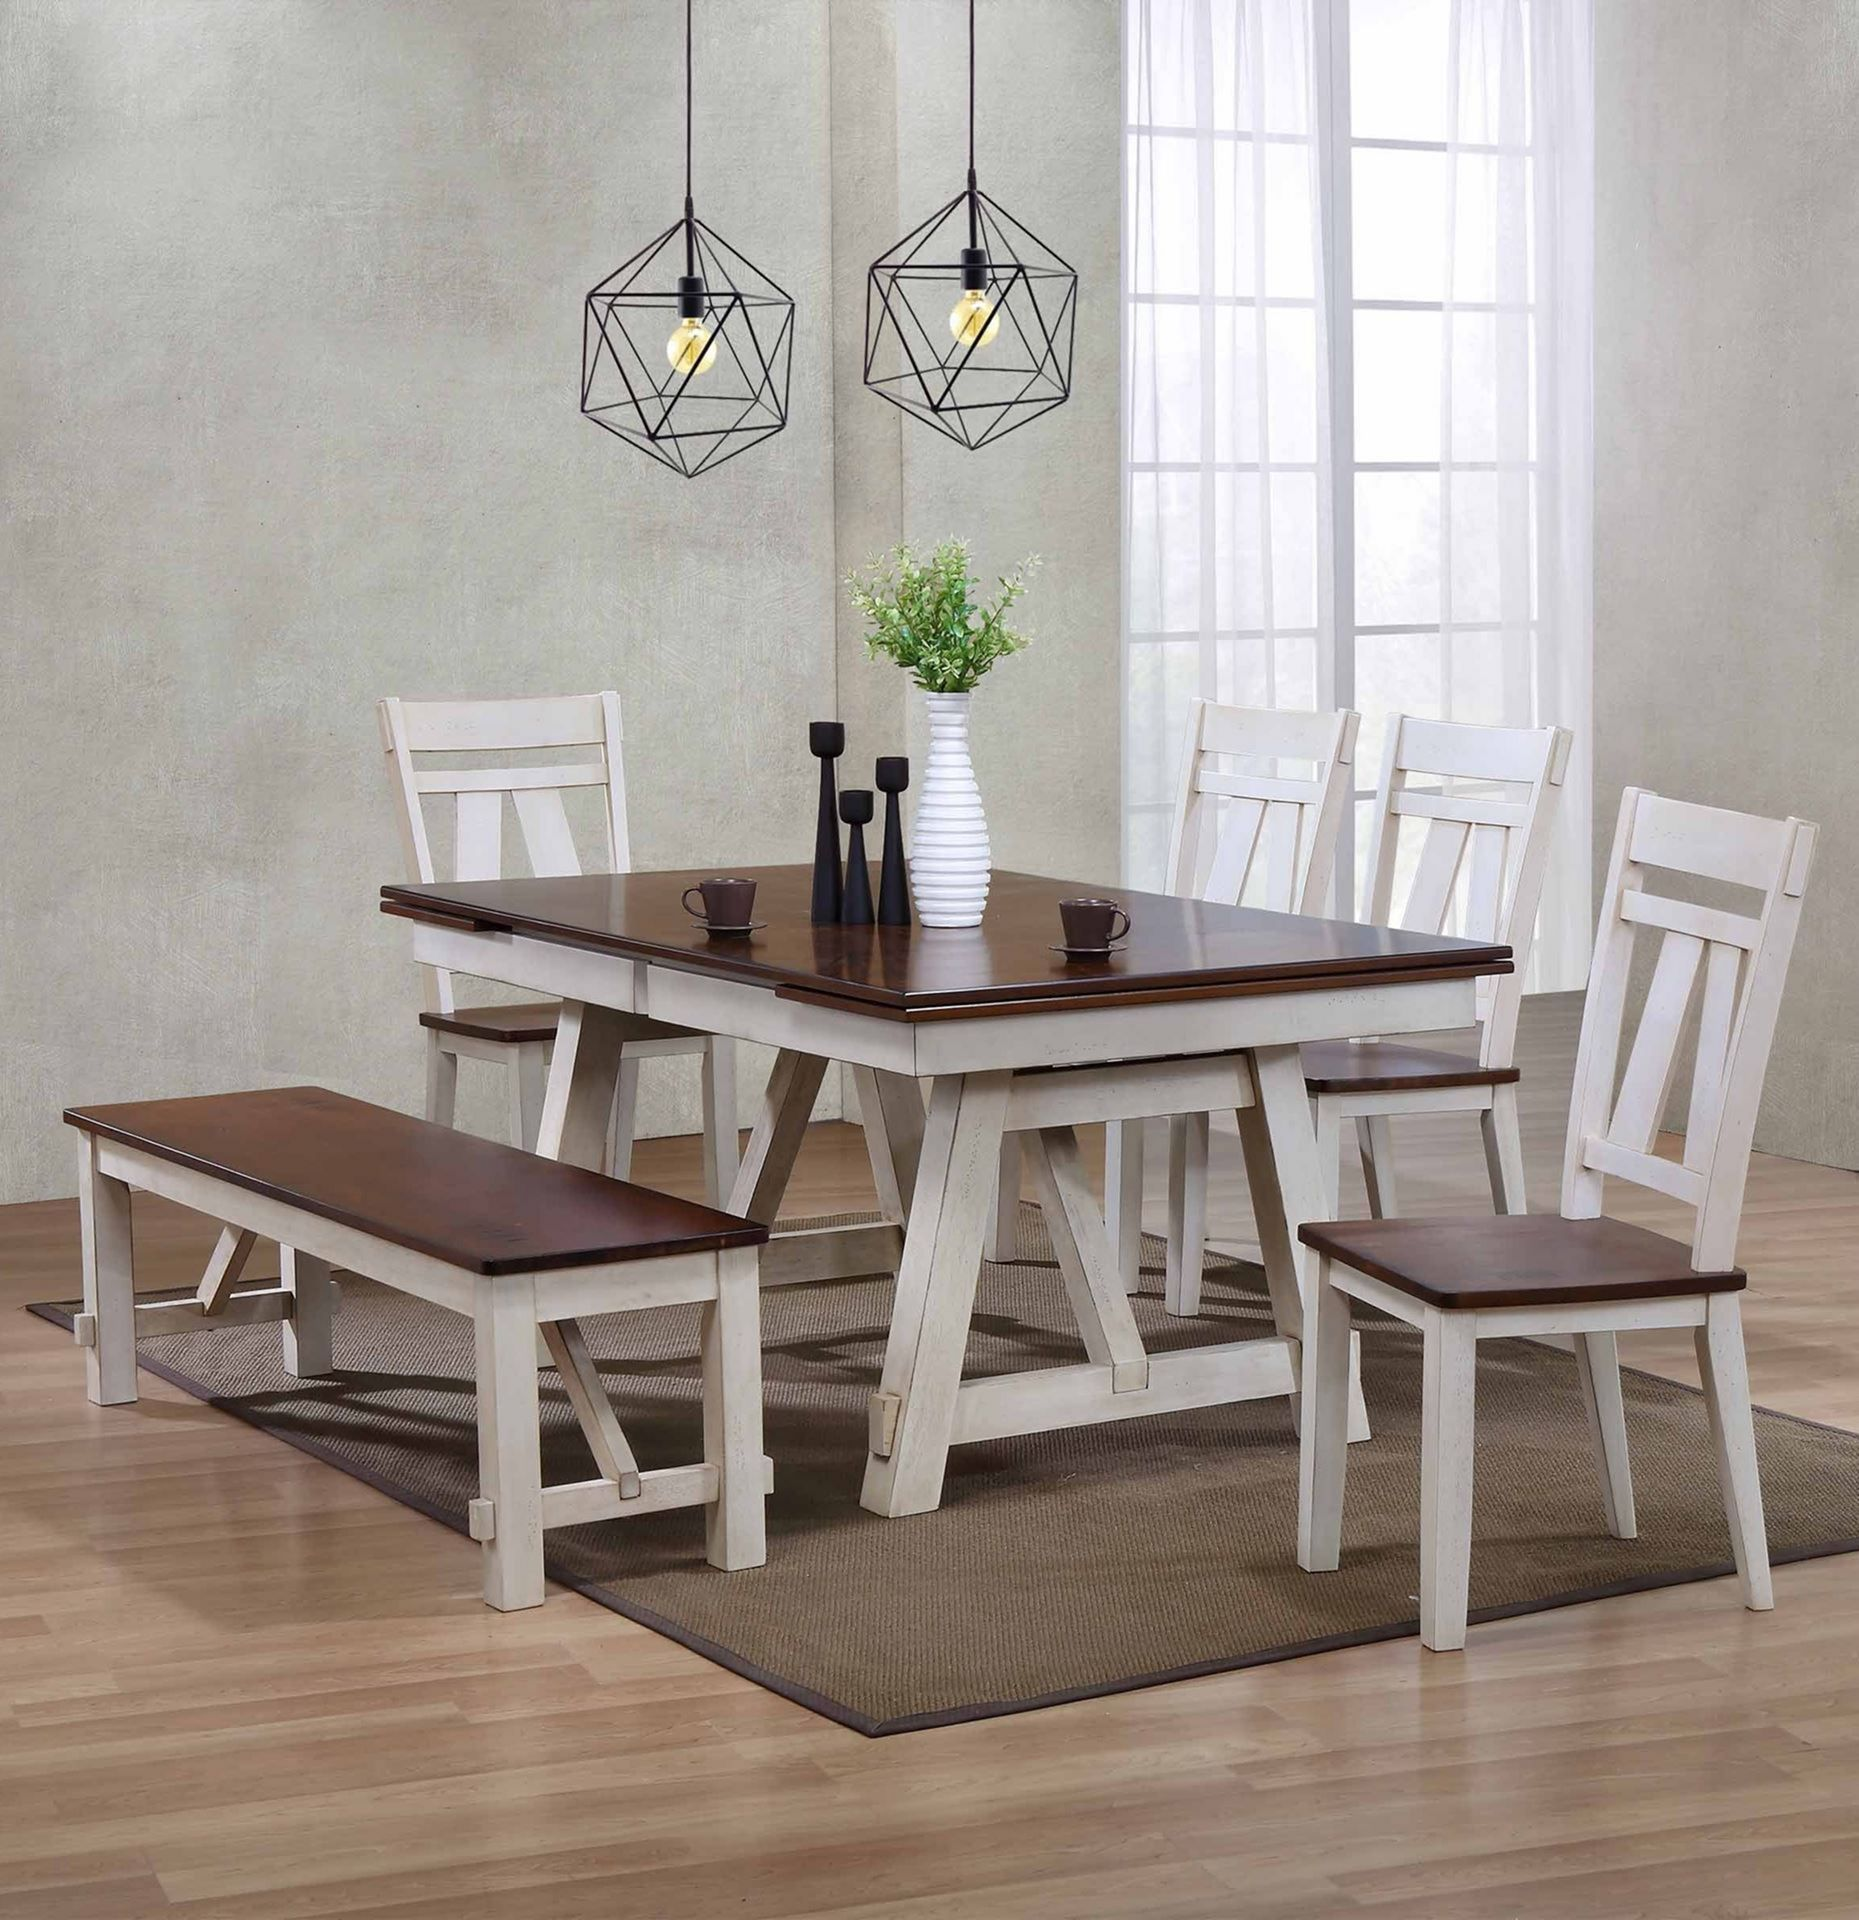 Charming And Cheap Decor Ideas Formal Dining Room: 38 Charming Farmhouse Dining Table Designs To Enjoy Your